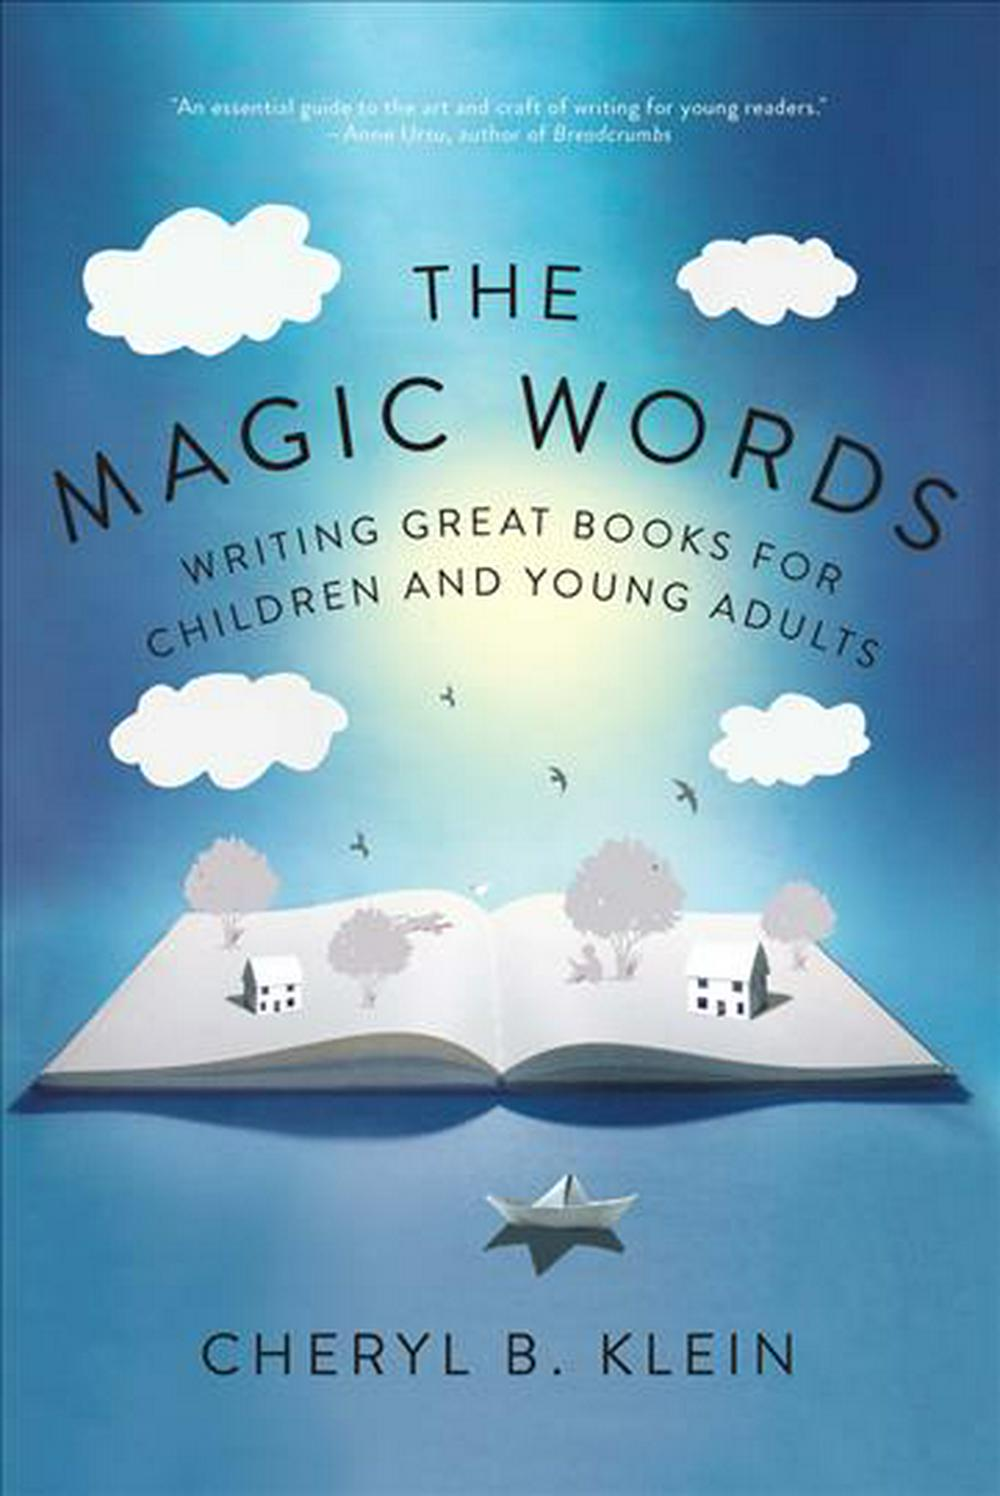 The Magic Words: Writing Great Books for Children and Young Adults by Cheryl Klein, ISBN: 9780393292244